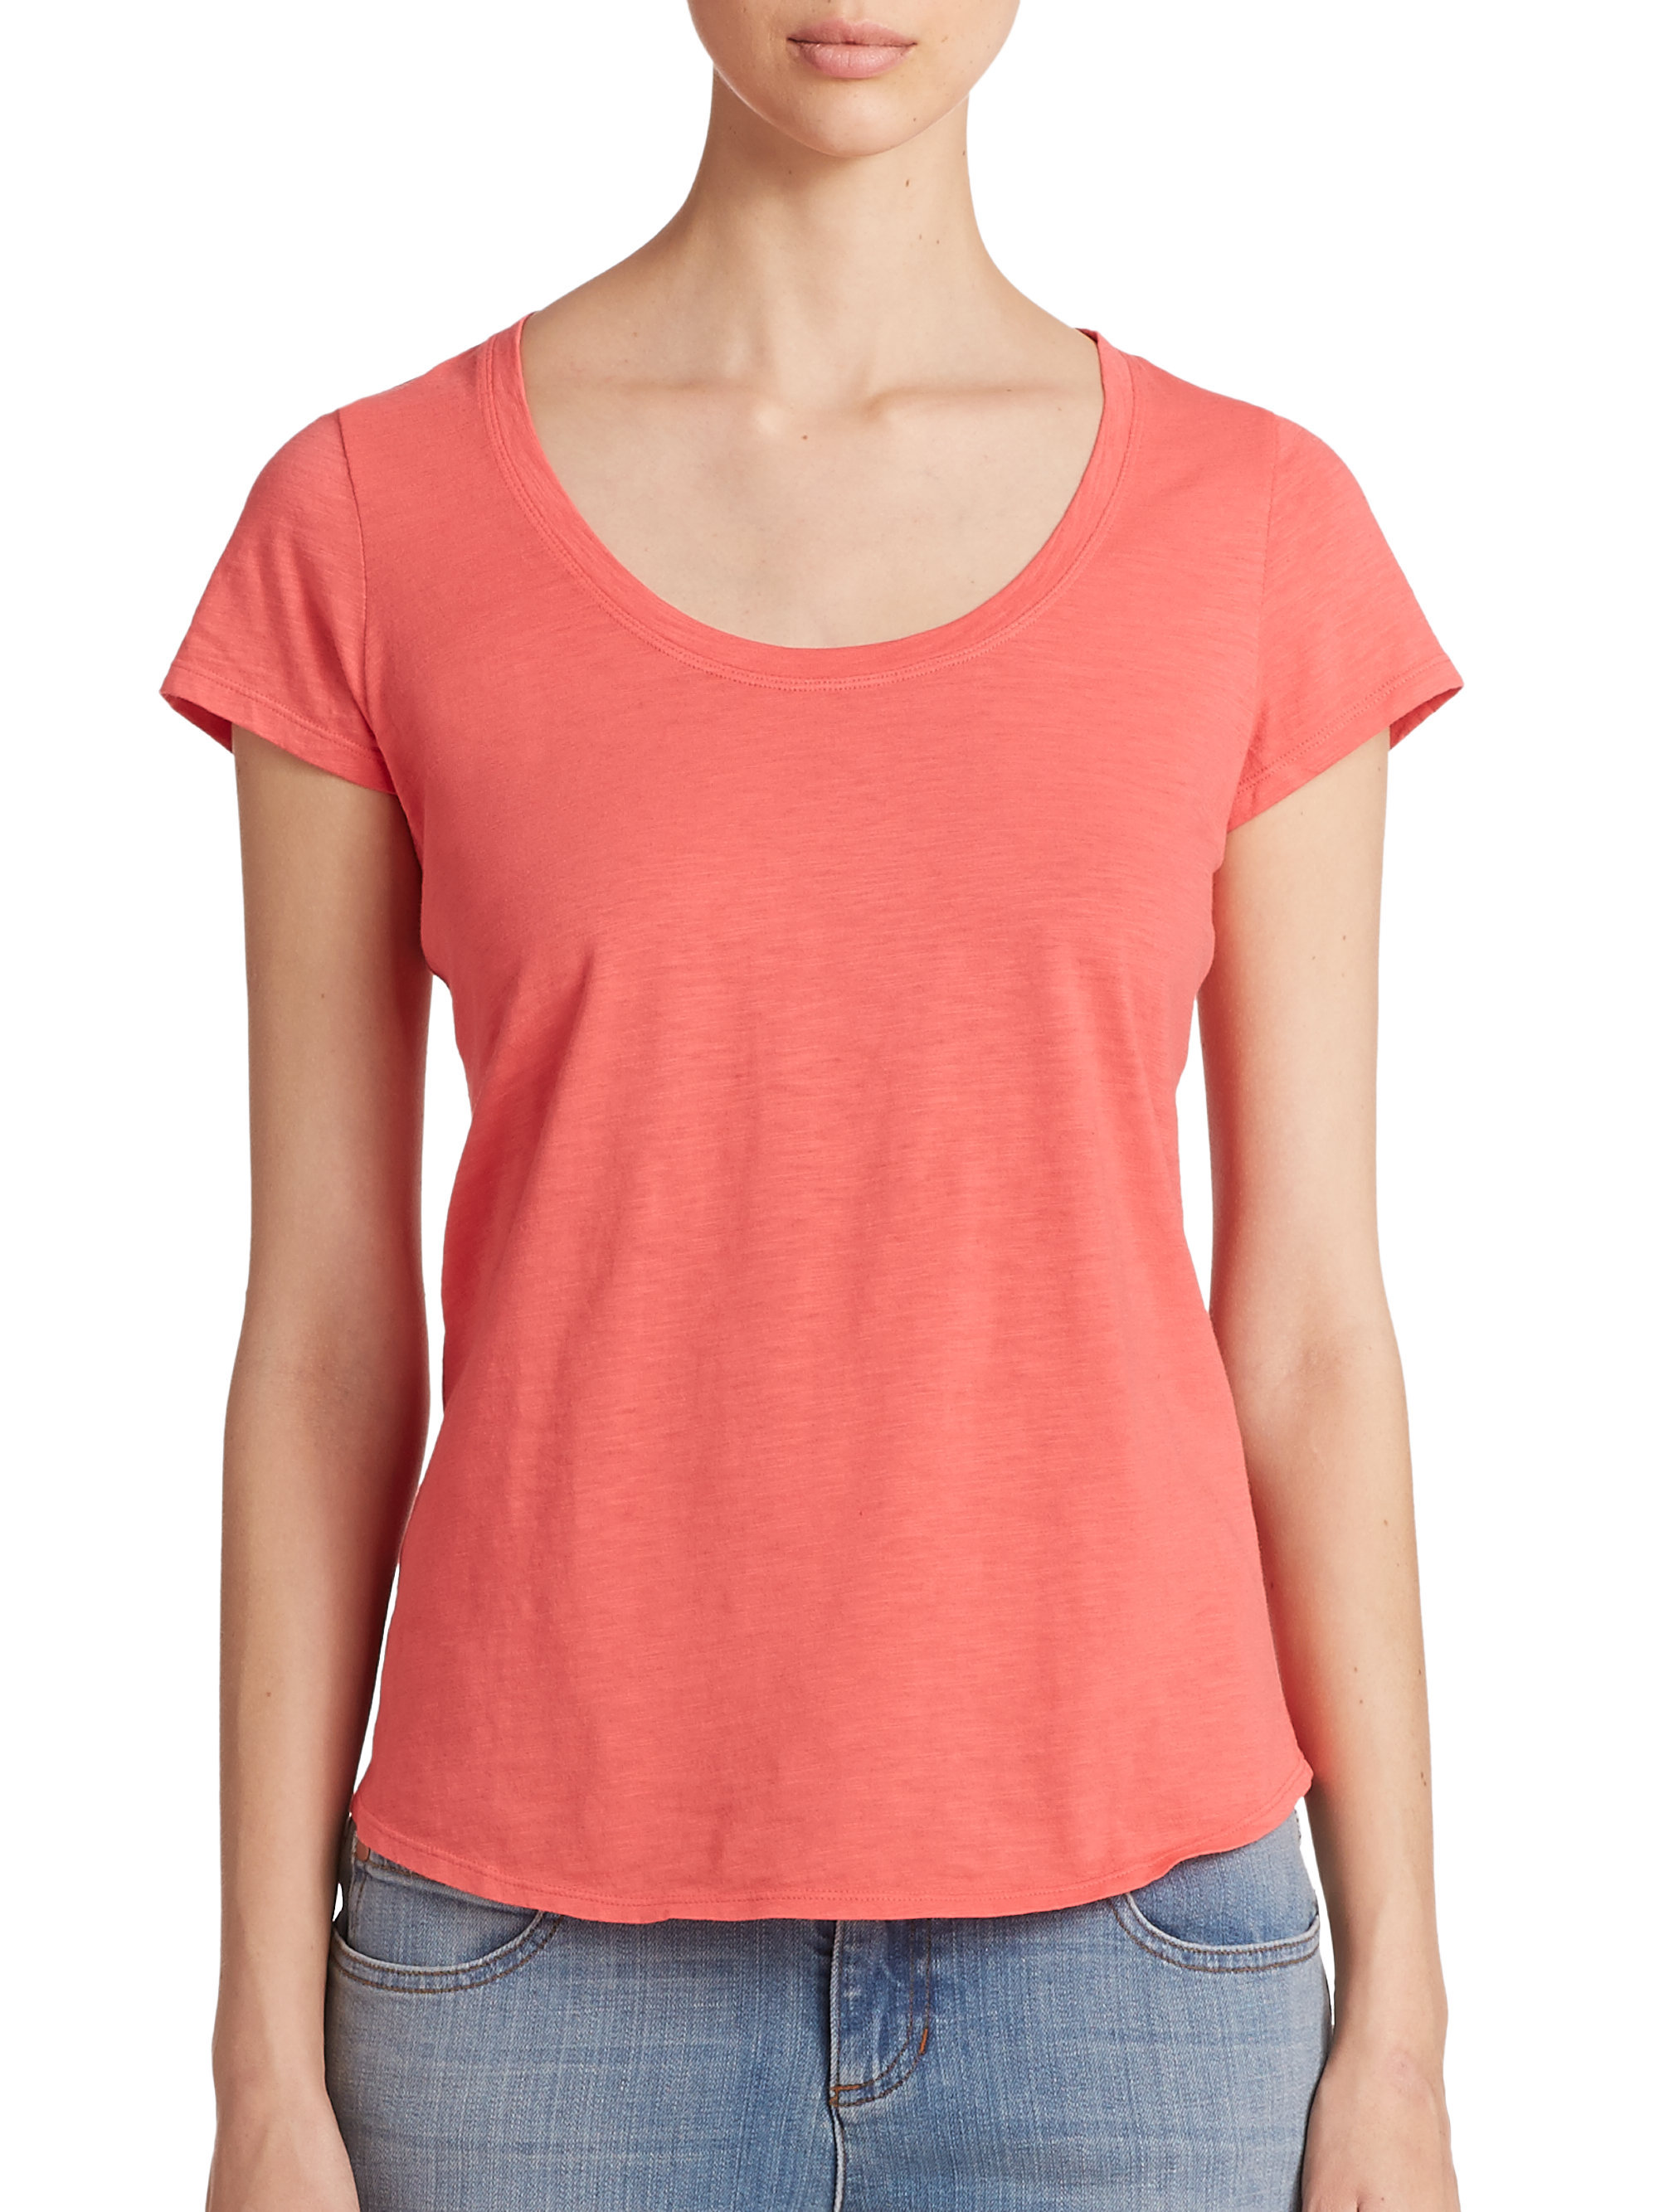 Eileen fisher organic cotton tee in pink lyst for Eileen fisher organic cotton t shirt